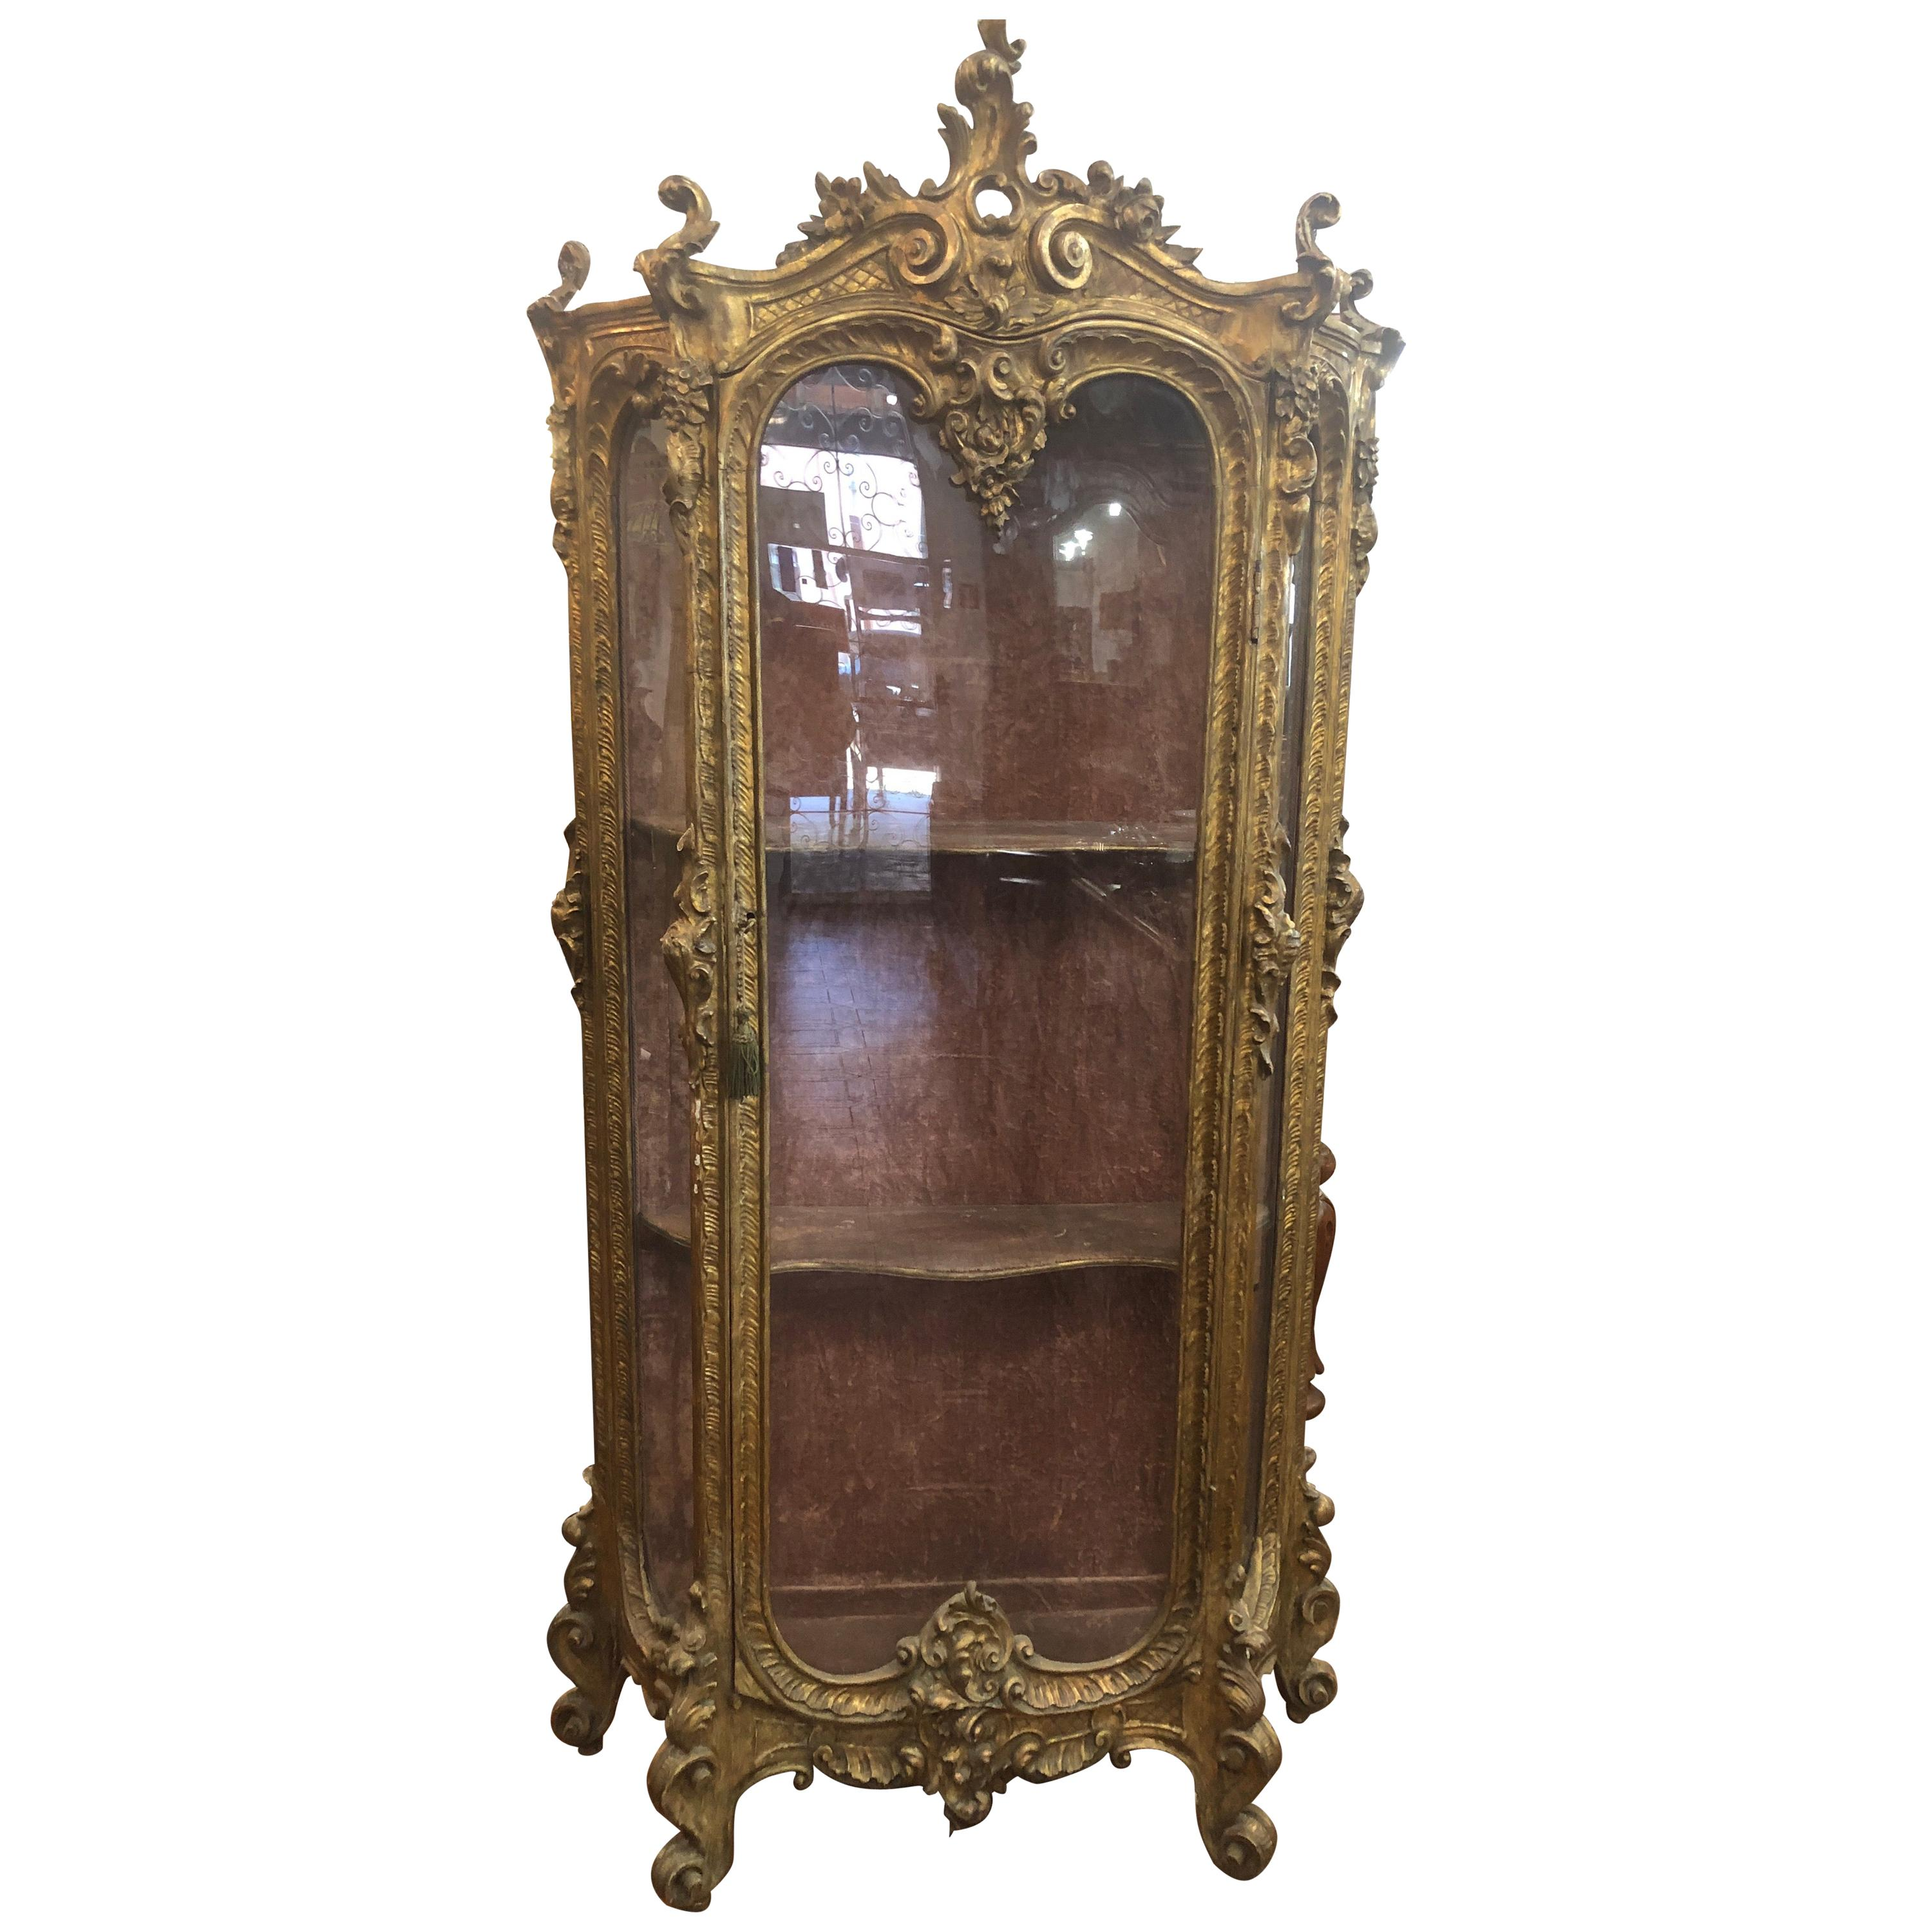 19th Century Louis XVI French Gilt Cabinet Vitrines Carved Gilt Wood 1840s